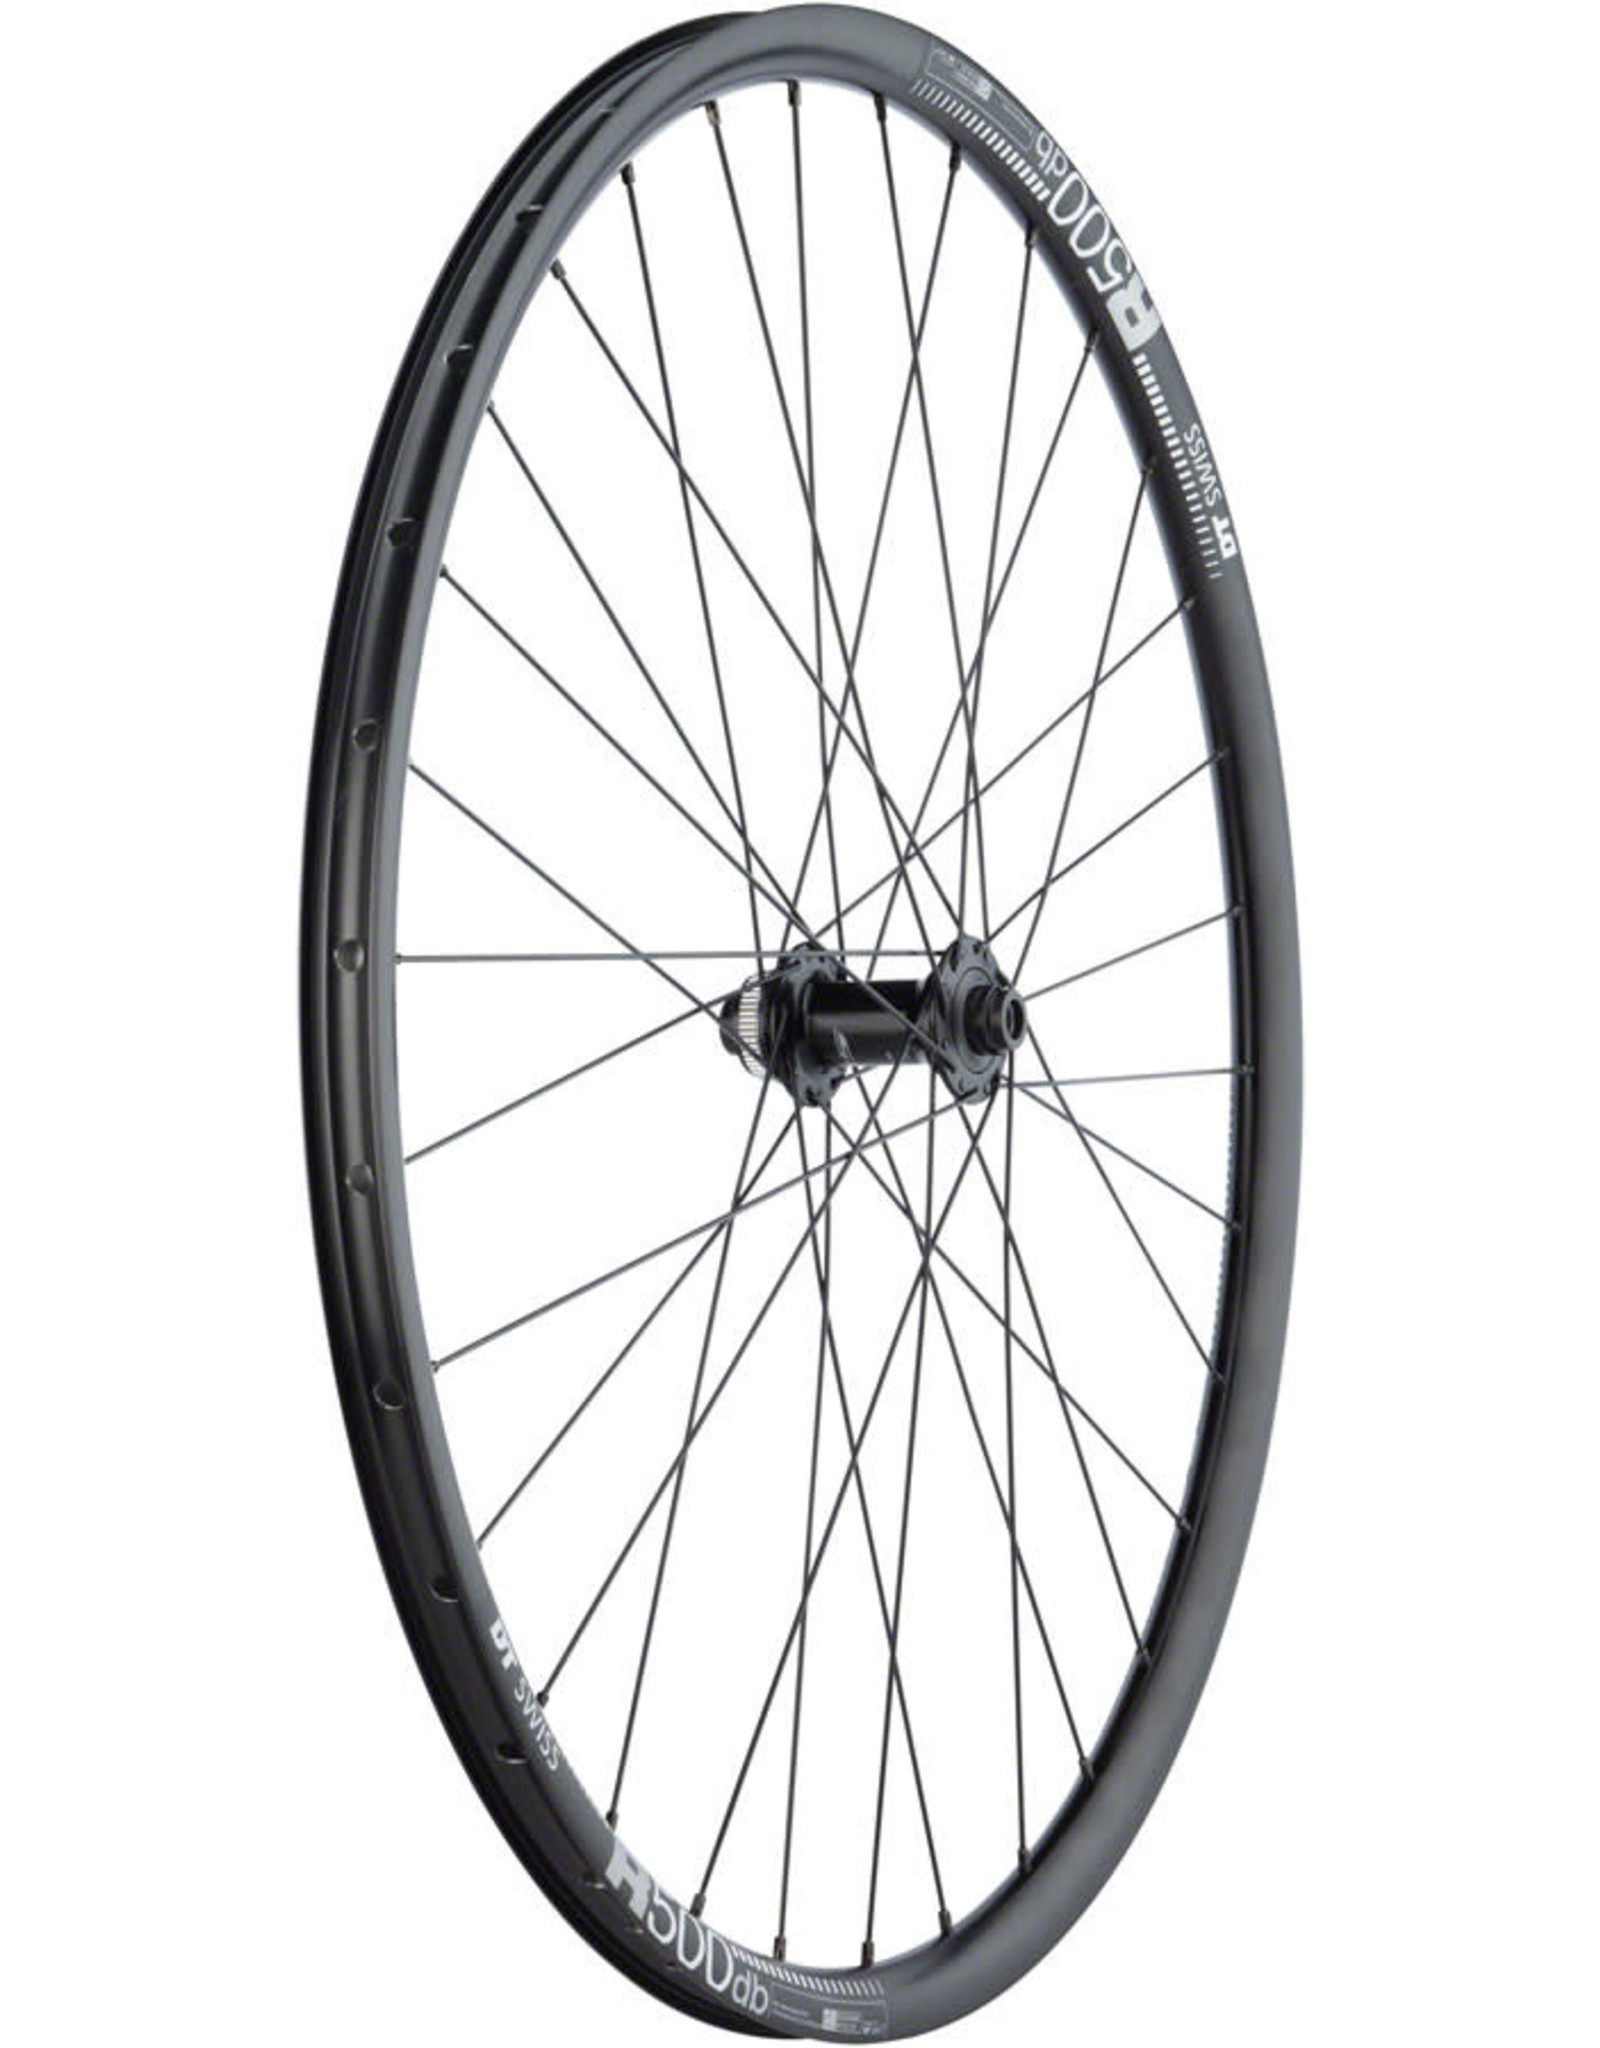 Quality Wheels RS505/DT R500 Disc - 700, 12 x 100mm, Center-Lock, Black, Front Wheel